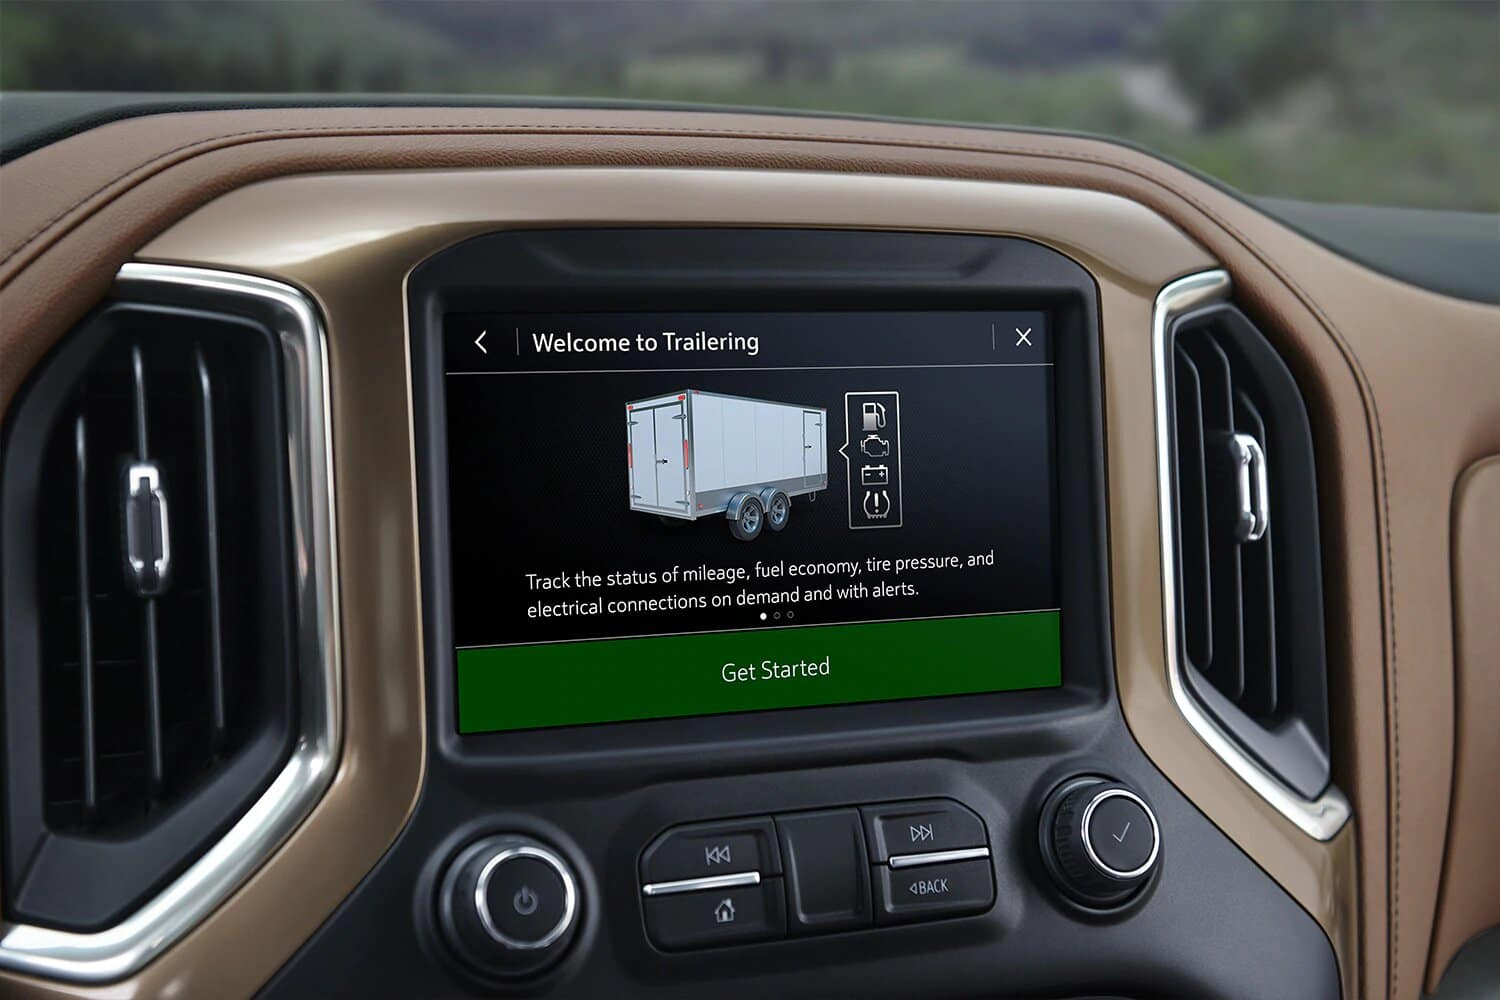 2020 Chevy Silverado 1500 Near Tulsa, OK Has The Latest Tech Features